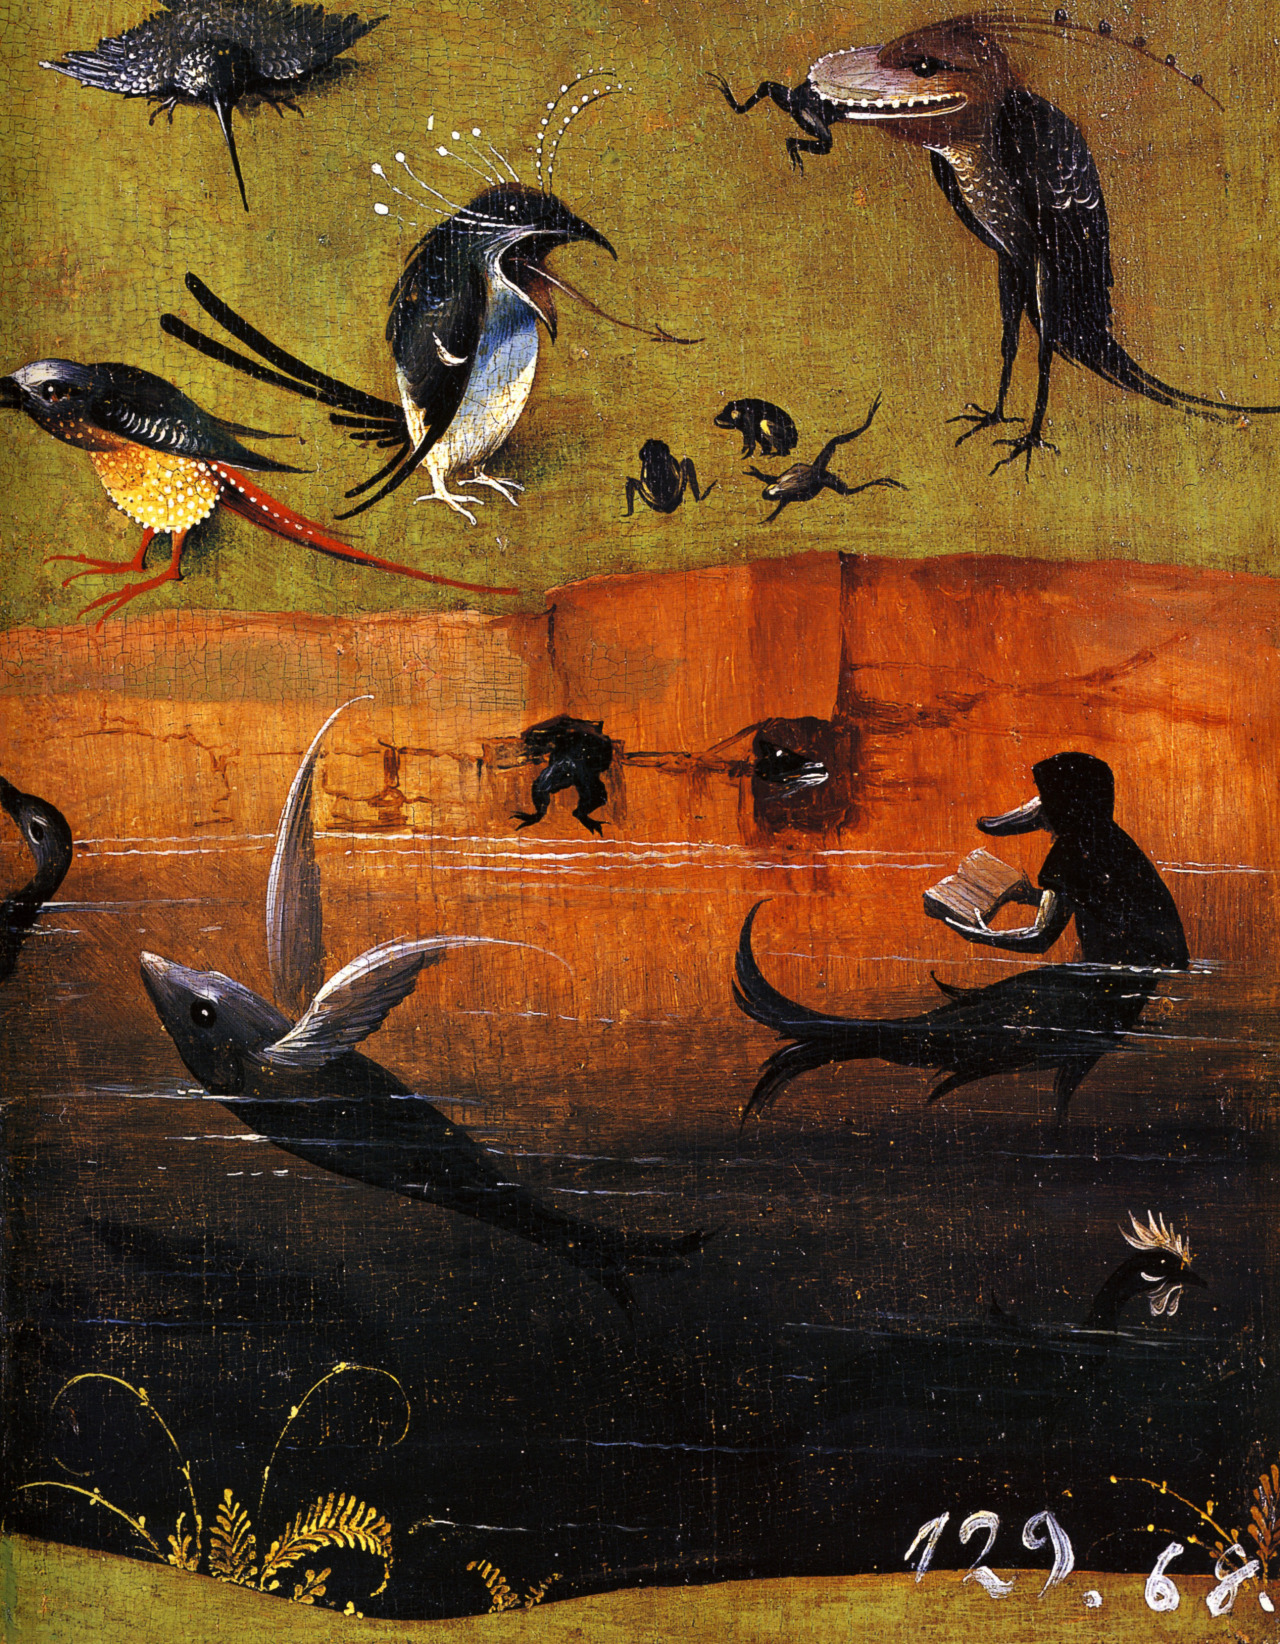 1480-1490  Hieronymus Bosch, The Garden of Earthly Delights, Paradise, detail diverse and varied wildlife